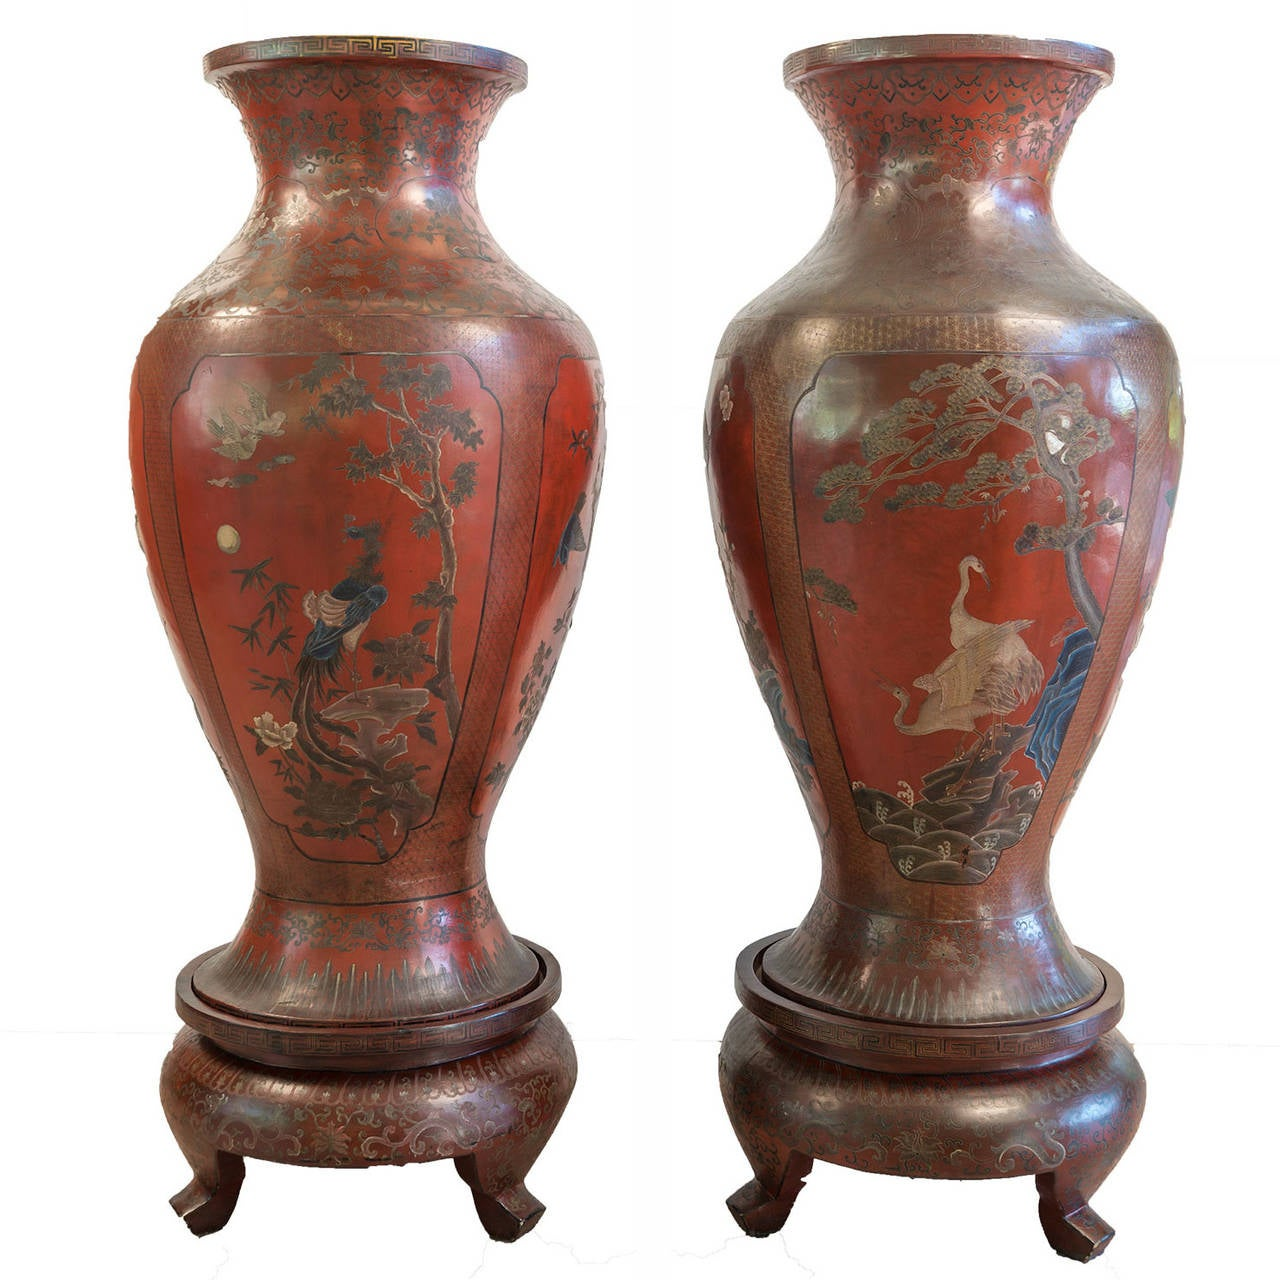 Pair of red lacquer chinese vases 19th century for sale at 1stdibs pair of red lacquer chinese vases 19th century for sale reviewsmspy